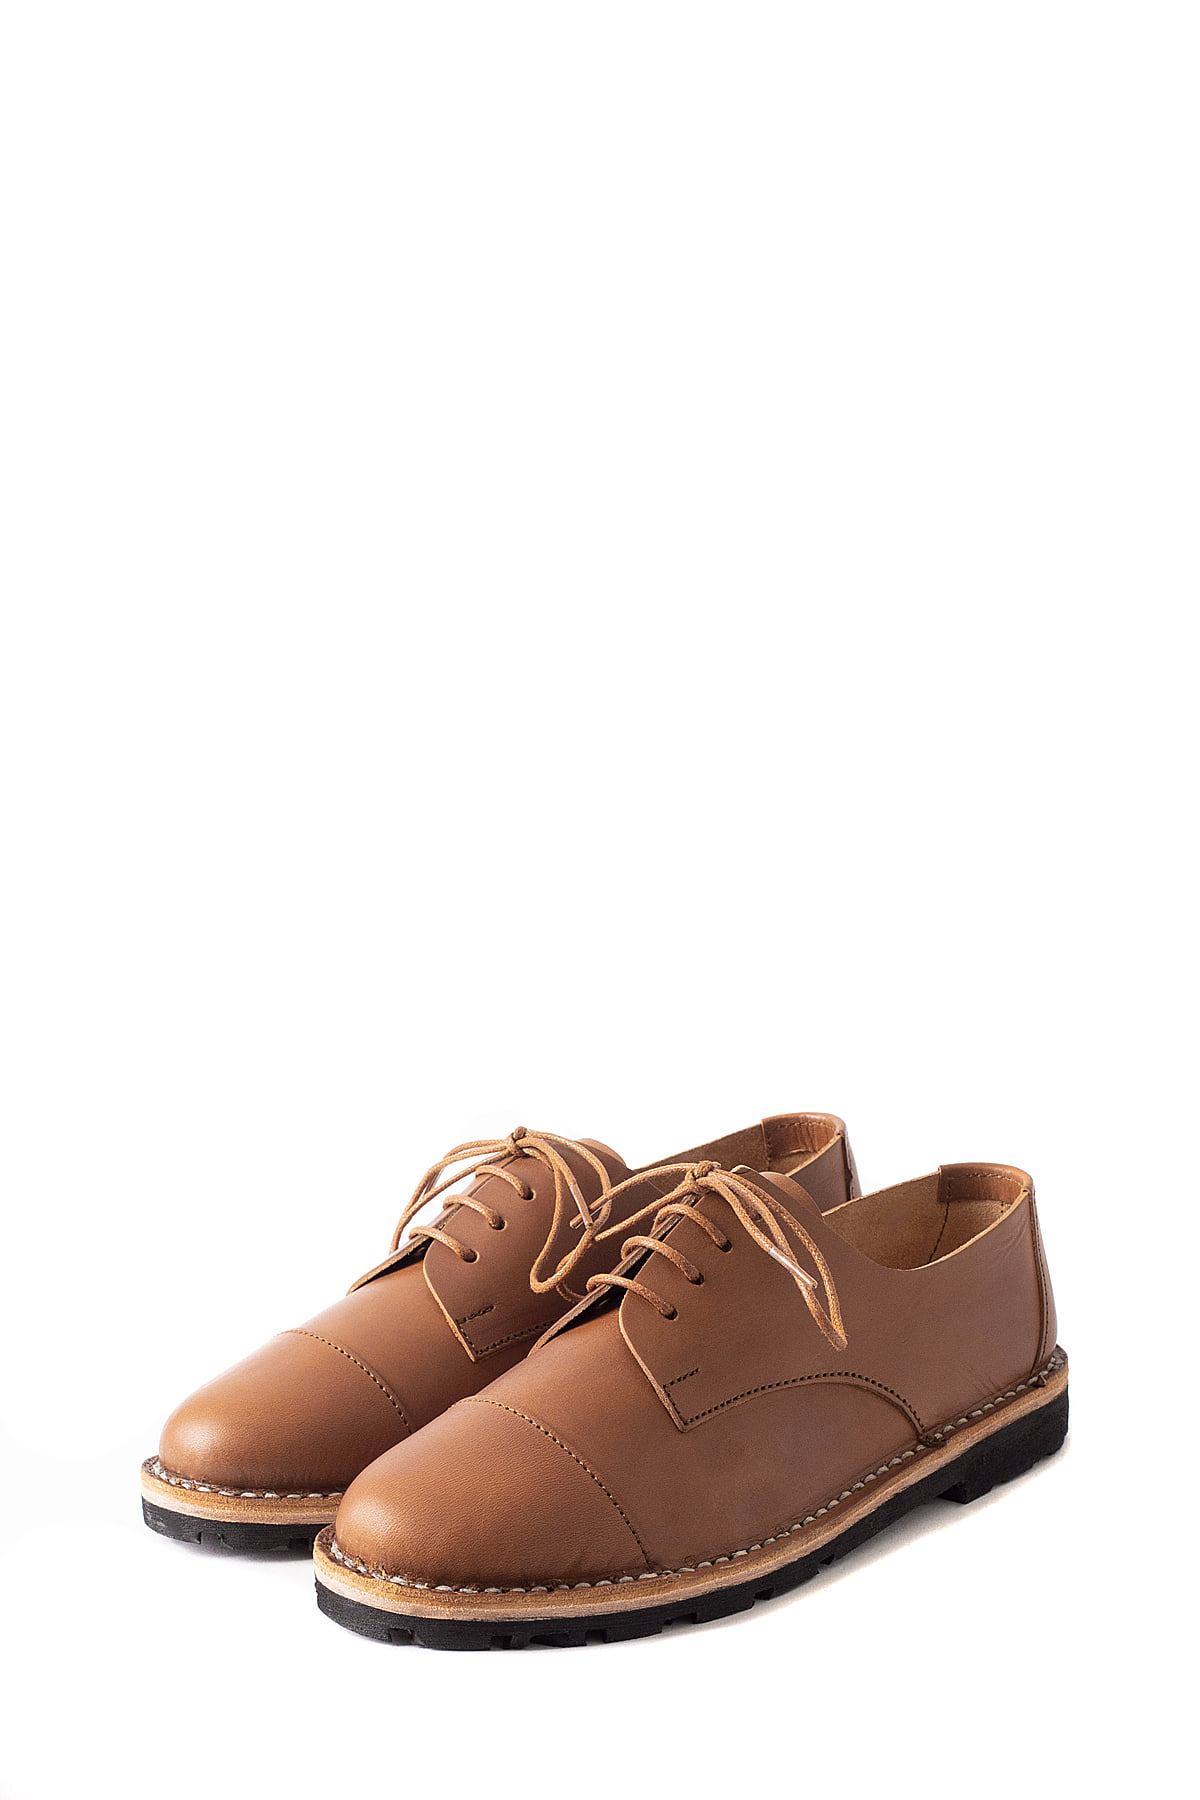 STEVE MONO : Artisanal Shoe 10/03 (Brown)